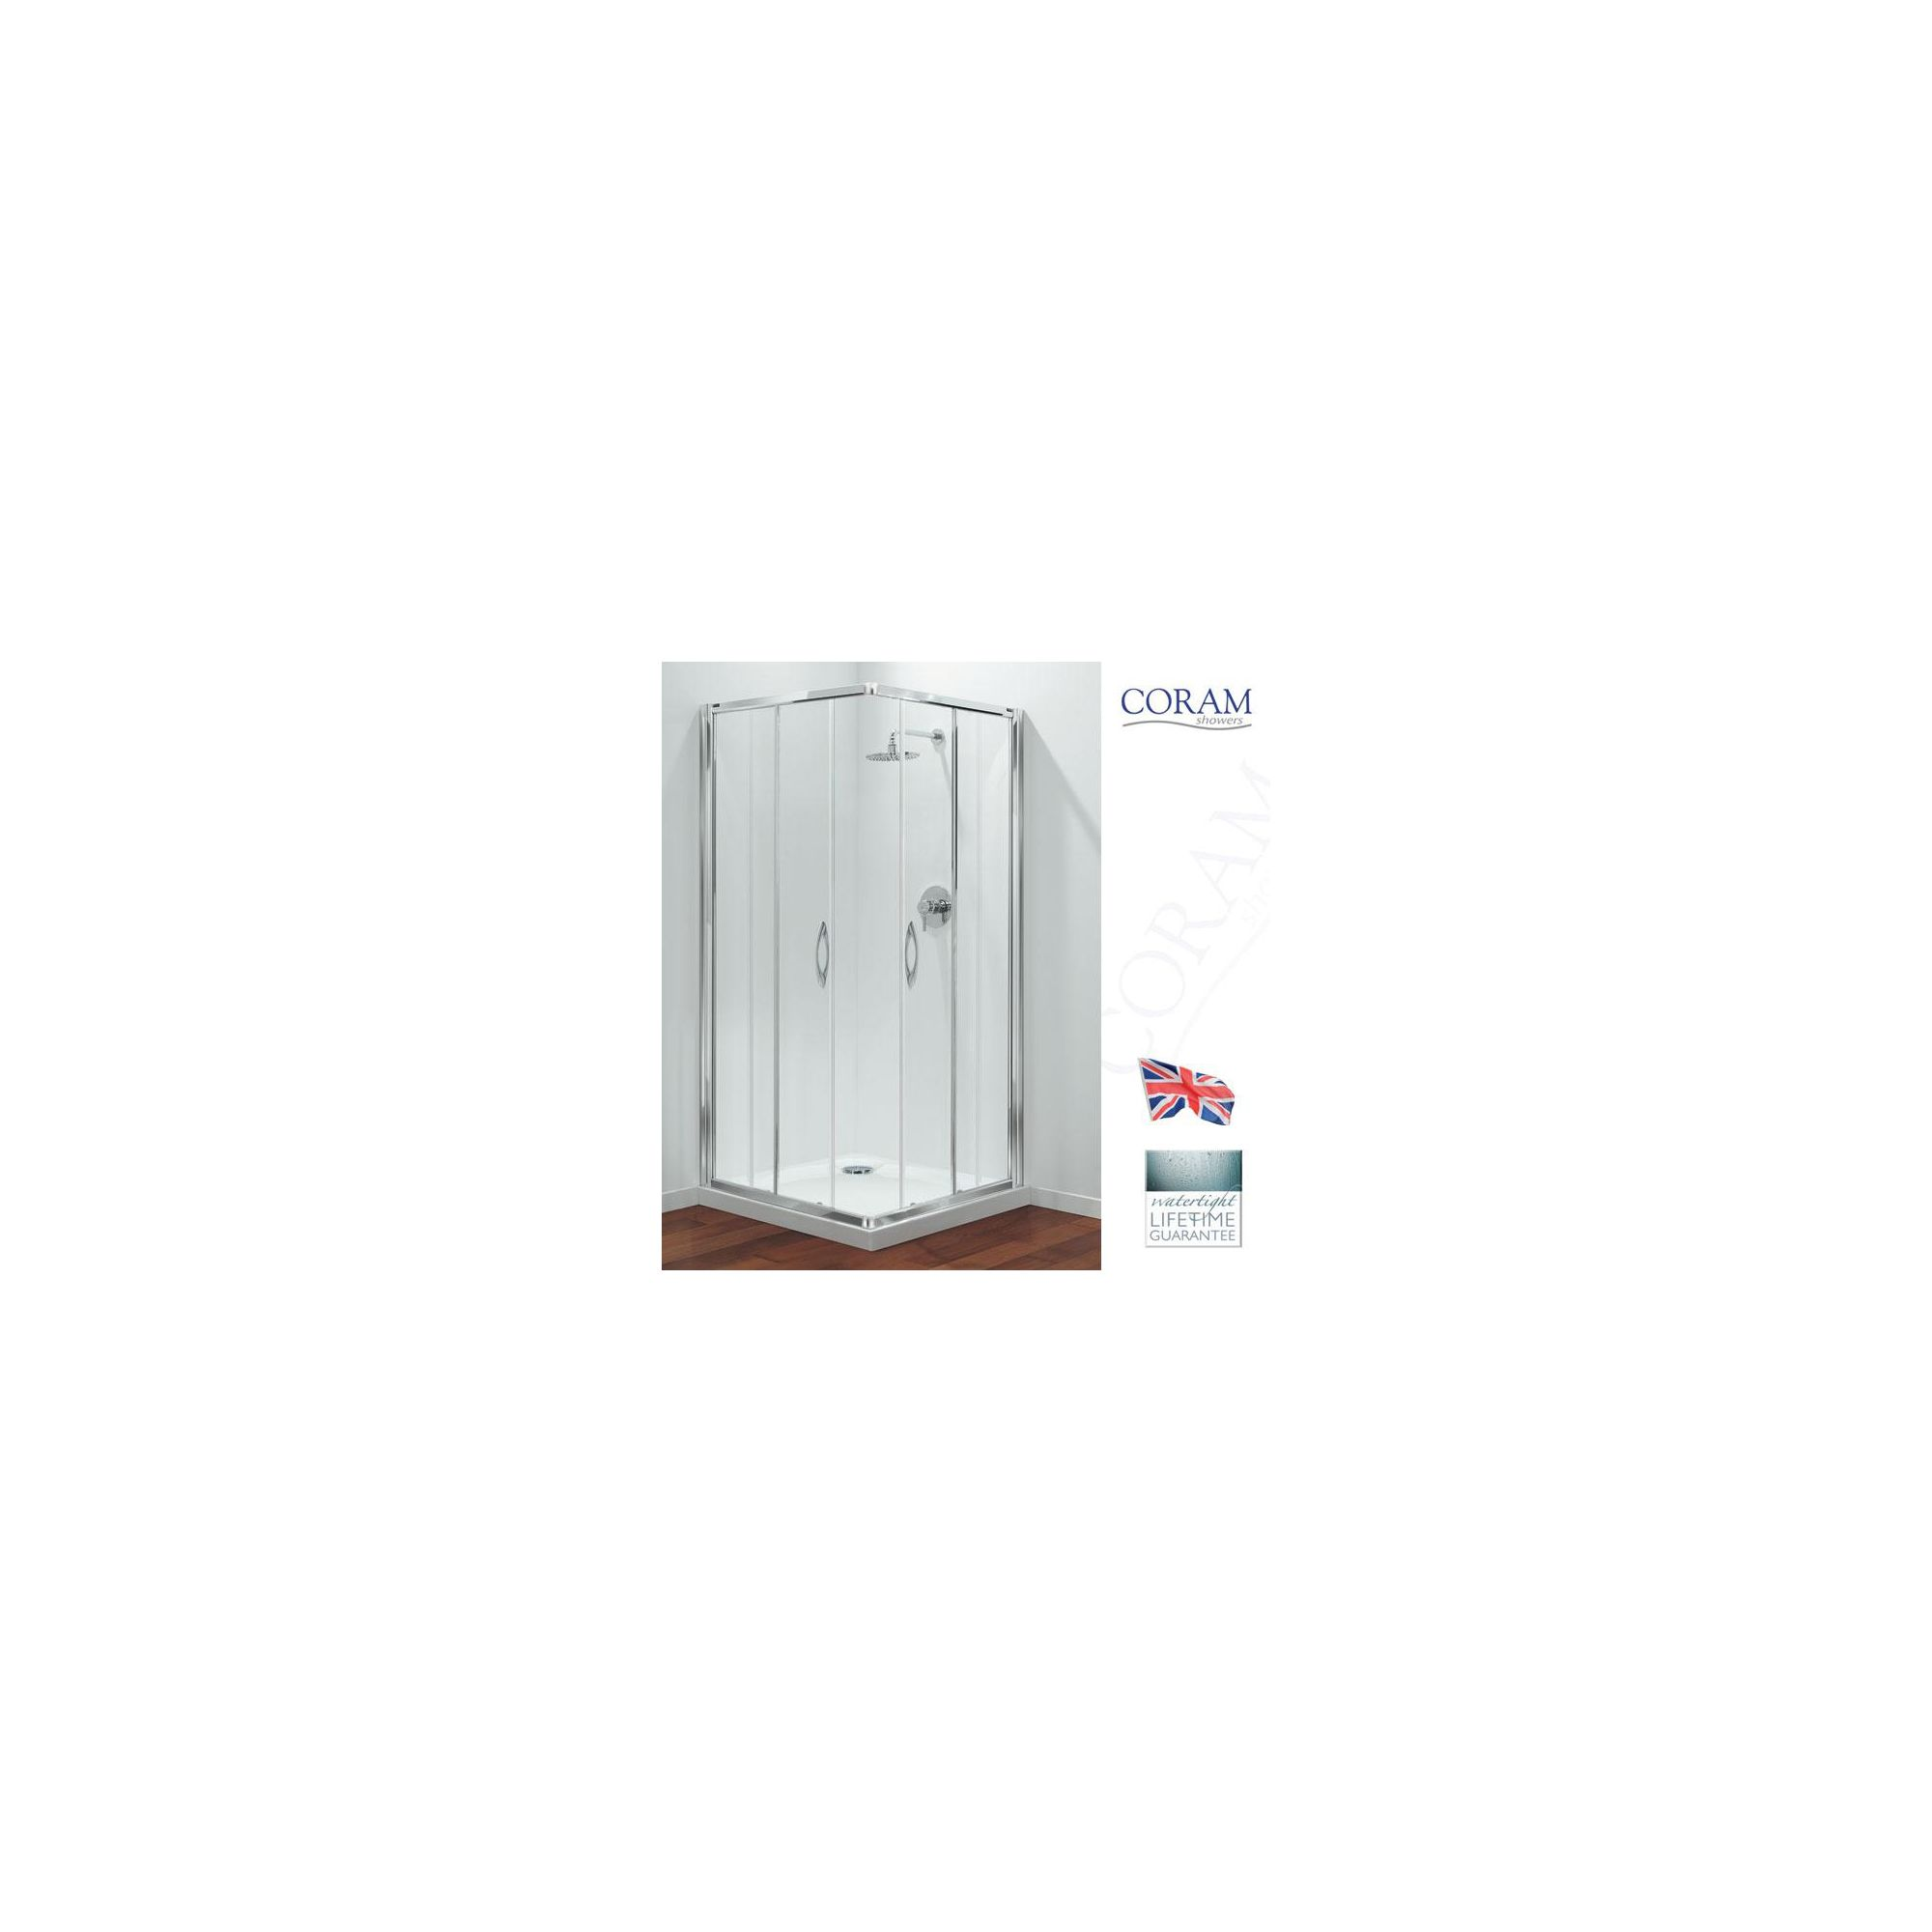 Coram Premier Corner Entry Shower Enclosure, 800mm x 800mm, Low Profile Tray, 6mm Glass at Tesco Direct